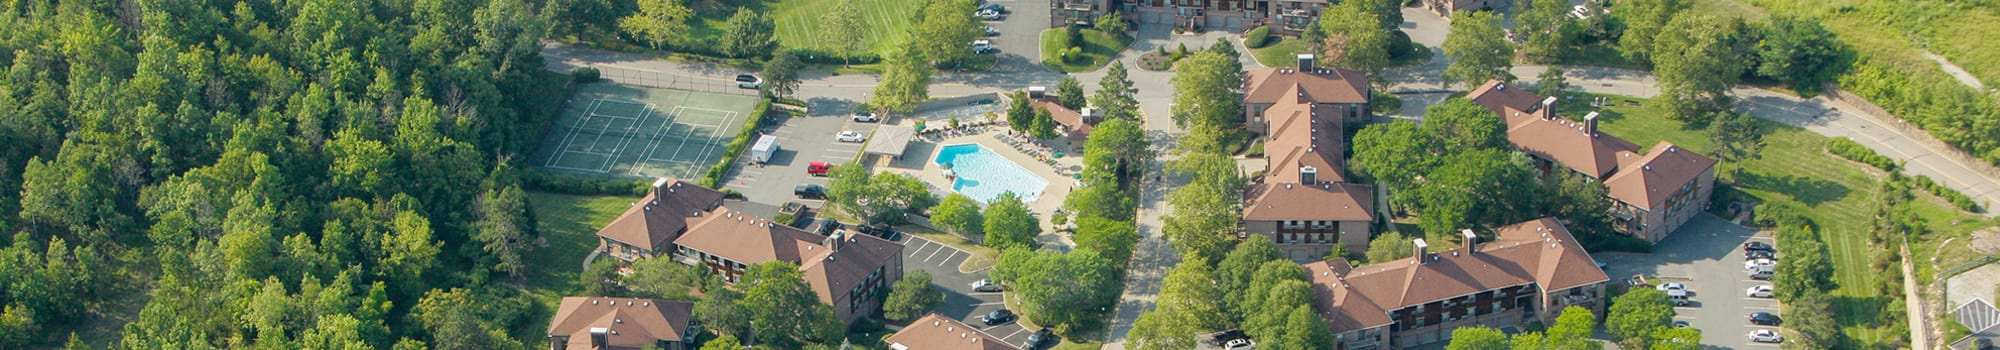 Schedule a tour to view our apartments at Everly Roseland in Roseland, New Jersey